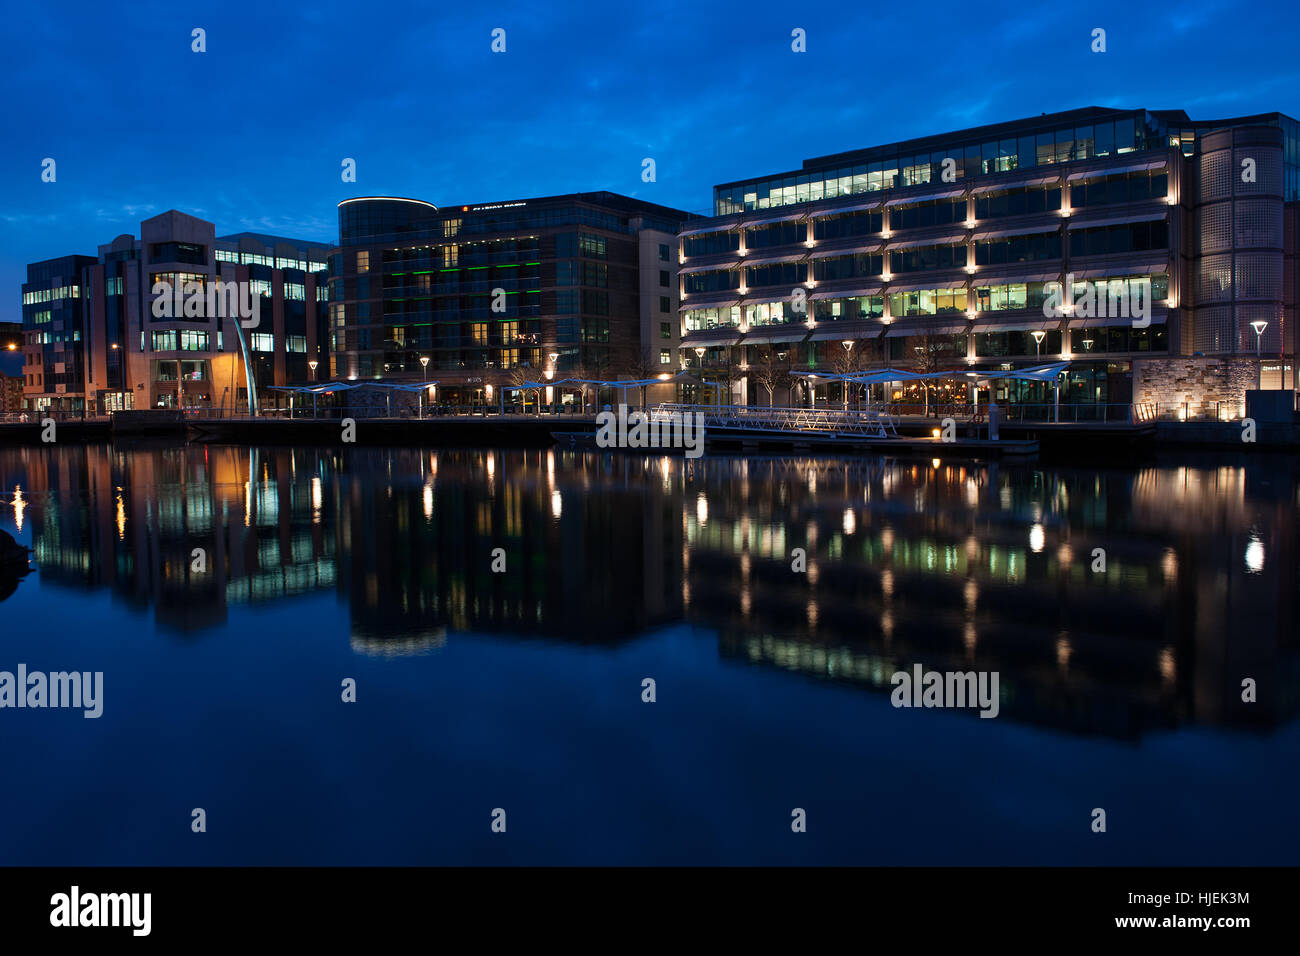 Clayton Hotel on Lapps Quay in Cork City at dusk which is part of the dockland rejuvenation reflected in the river - Stock Image